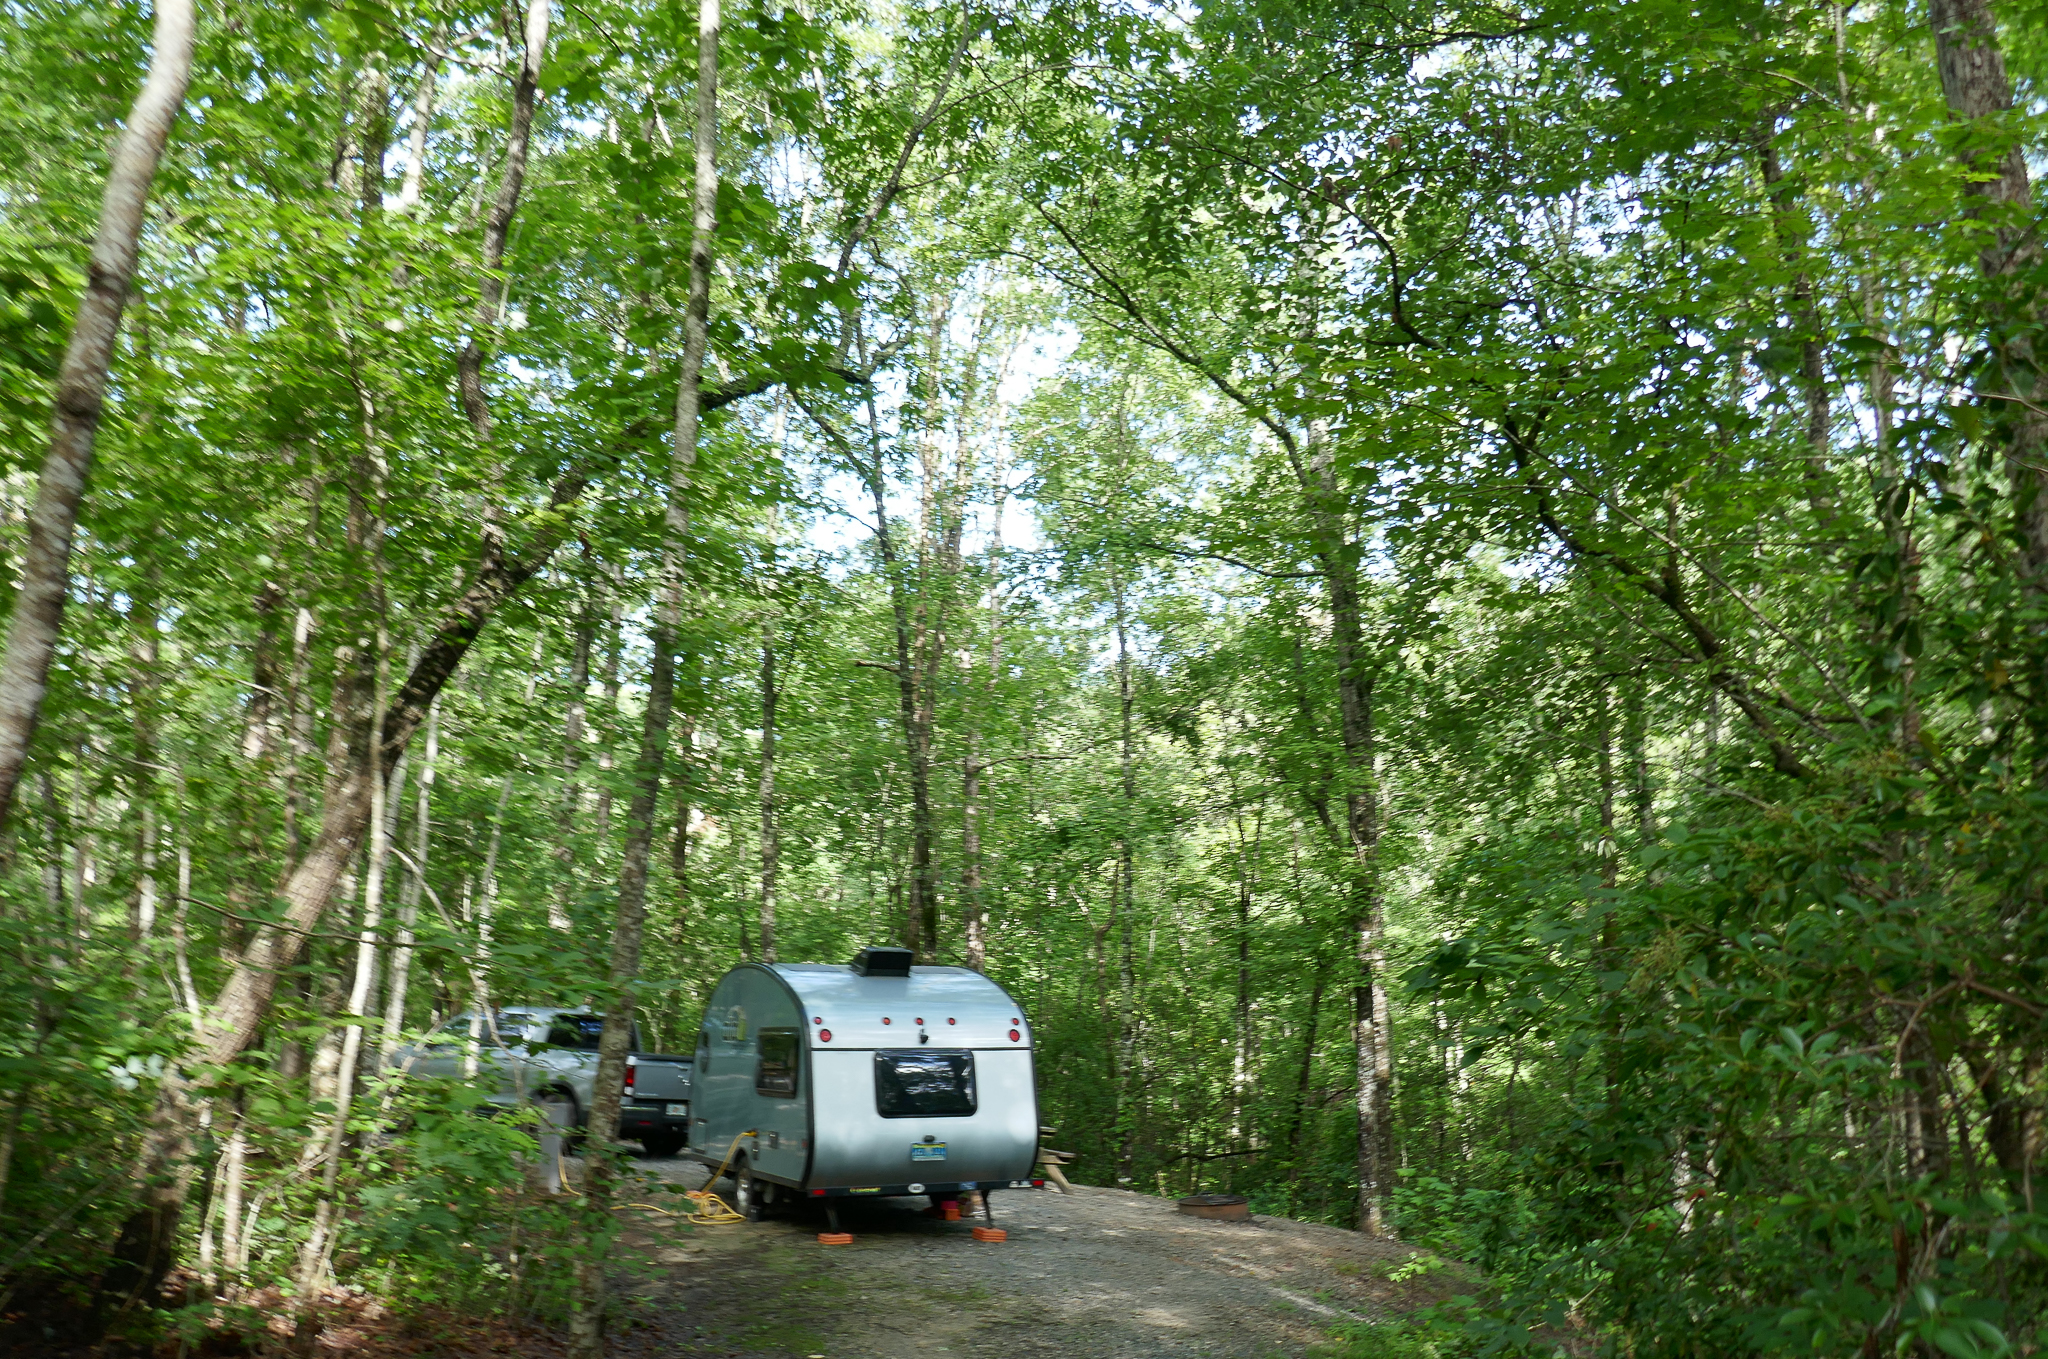 Pickup truck and trailer in campsite